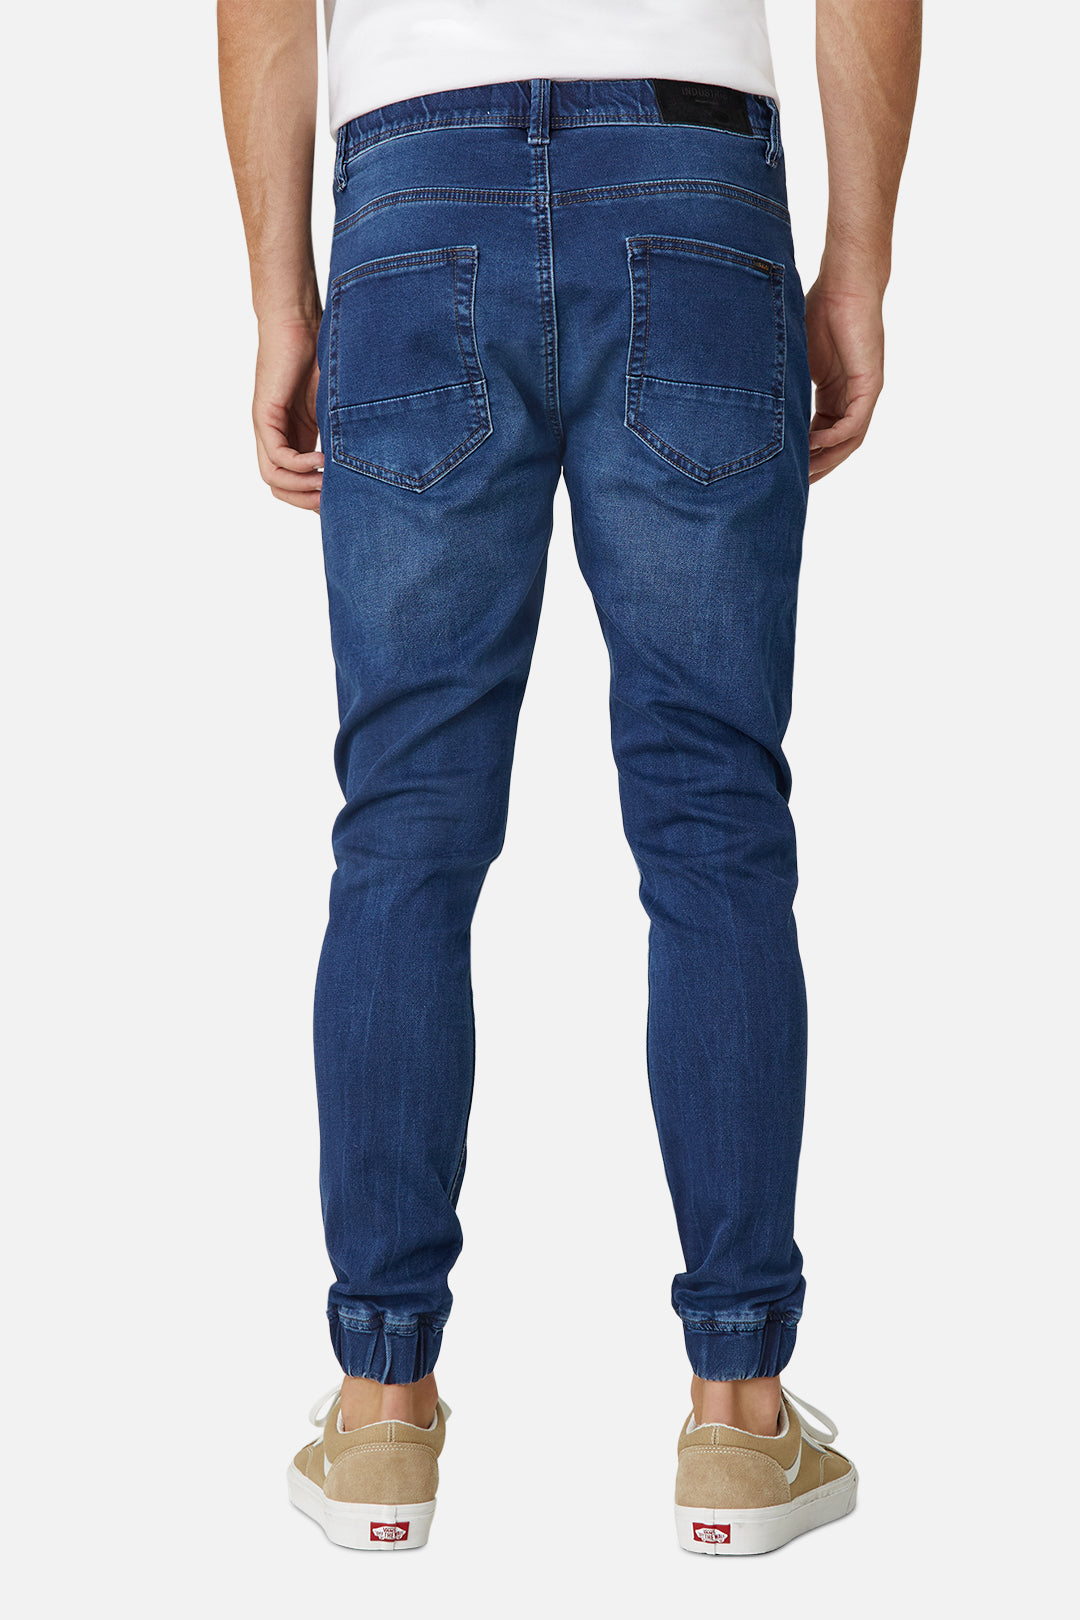 The Drifter Denim Pant - Blue